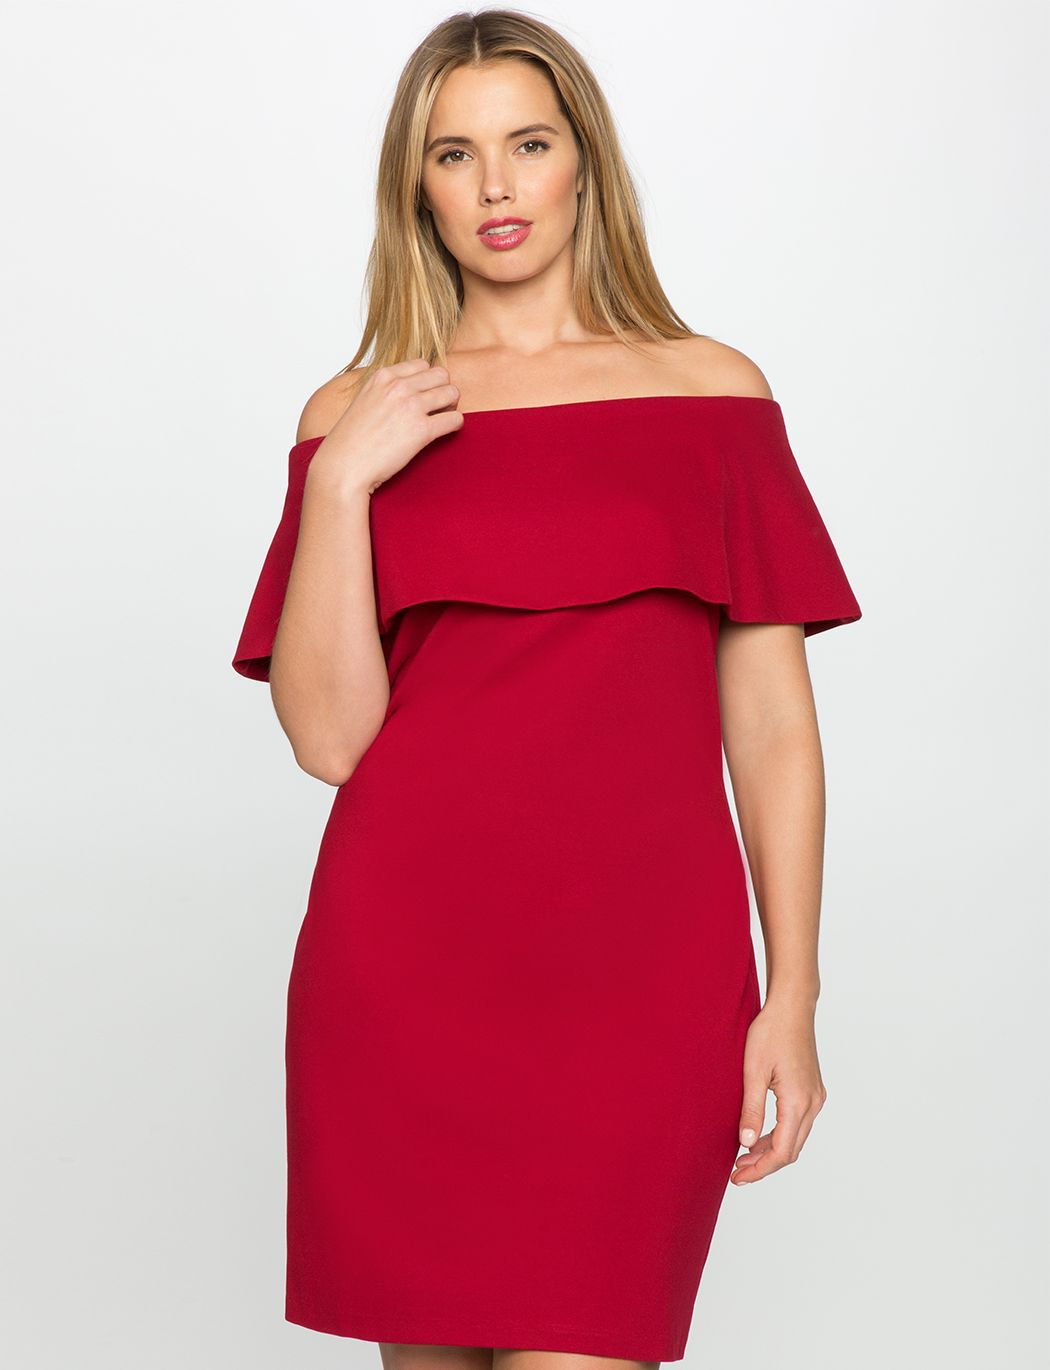 off the shoulder dress with overlay | women's plus size dresses